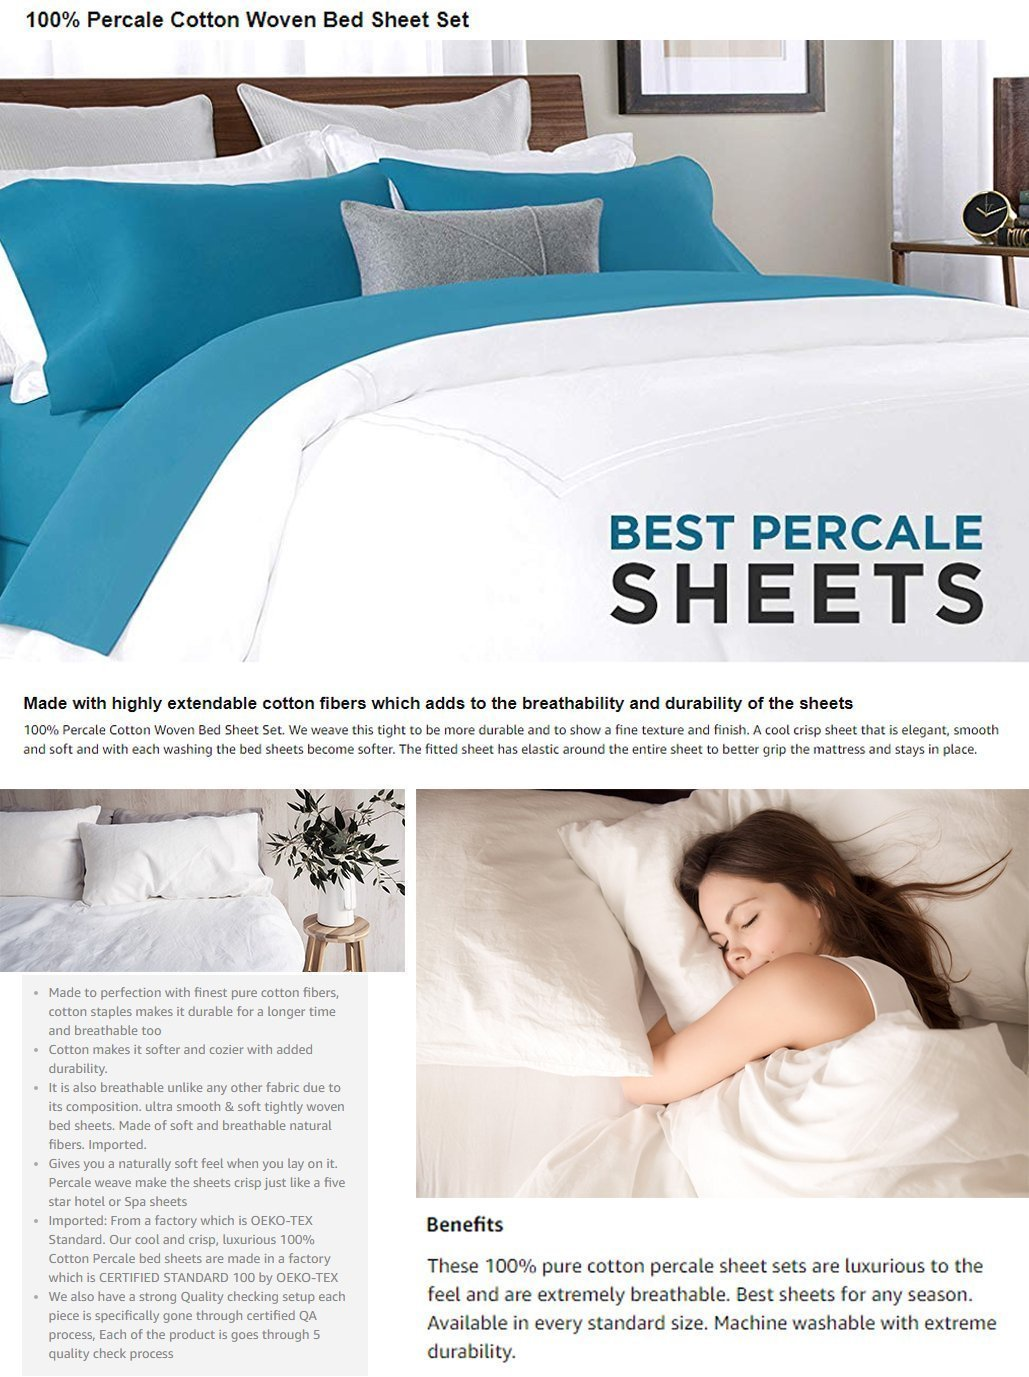 Luxury Percale sheet set, Five Star Hotel Bedding